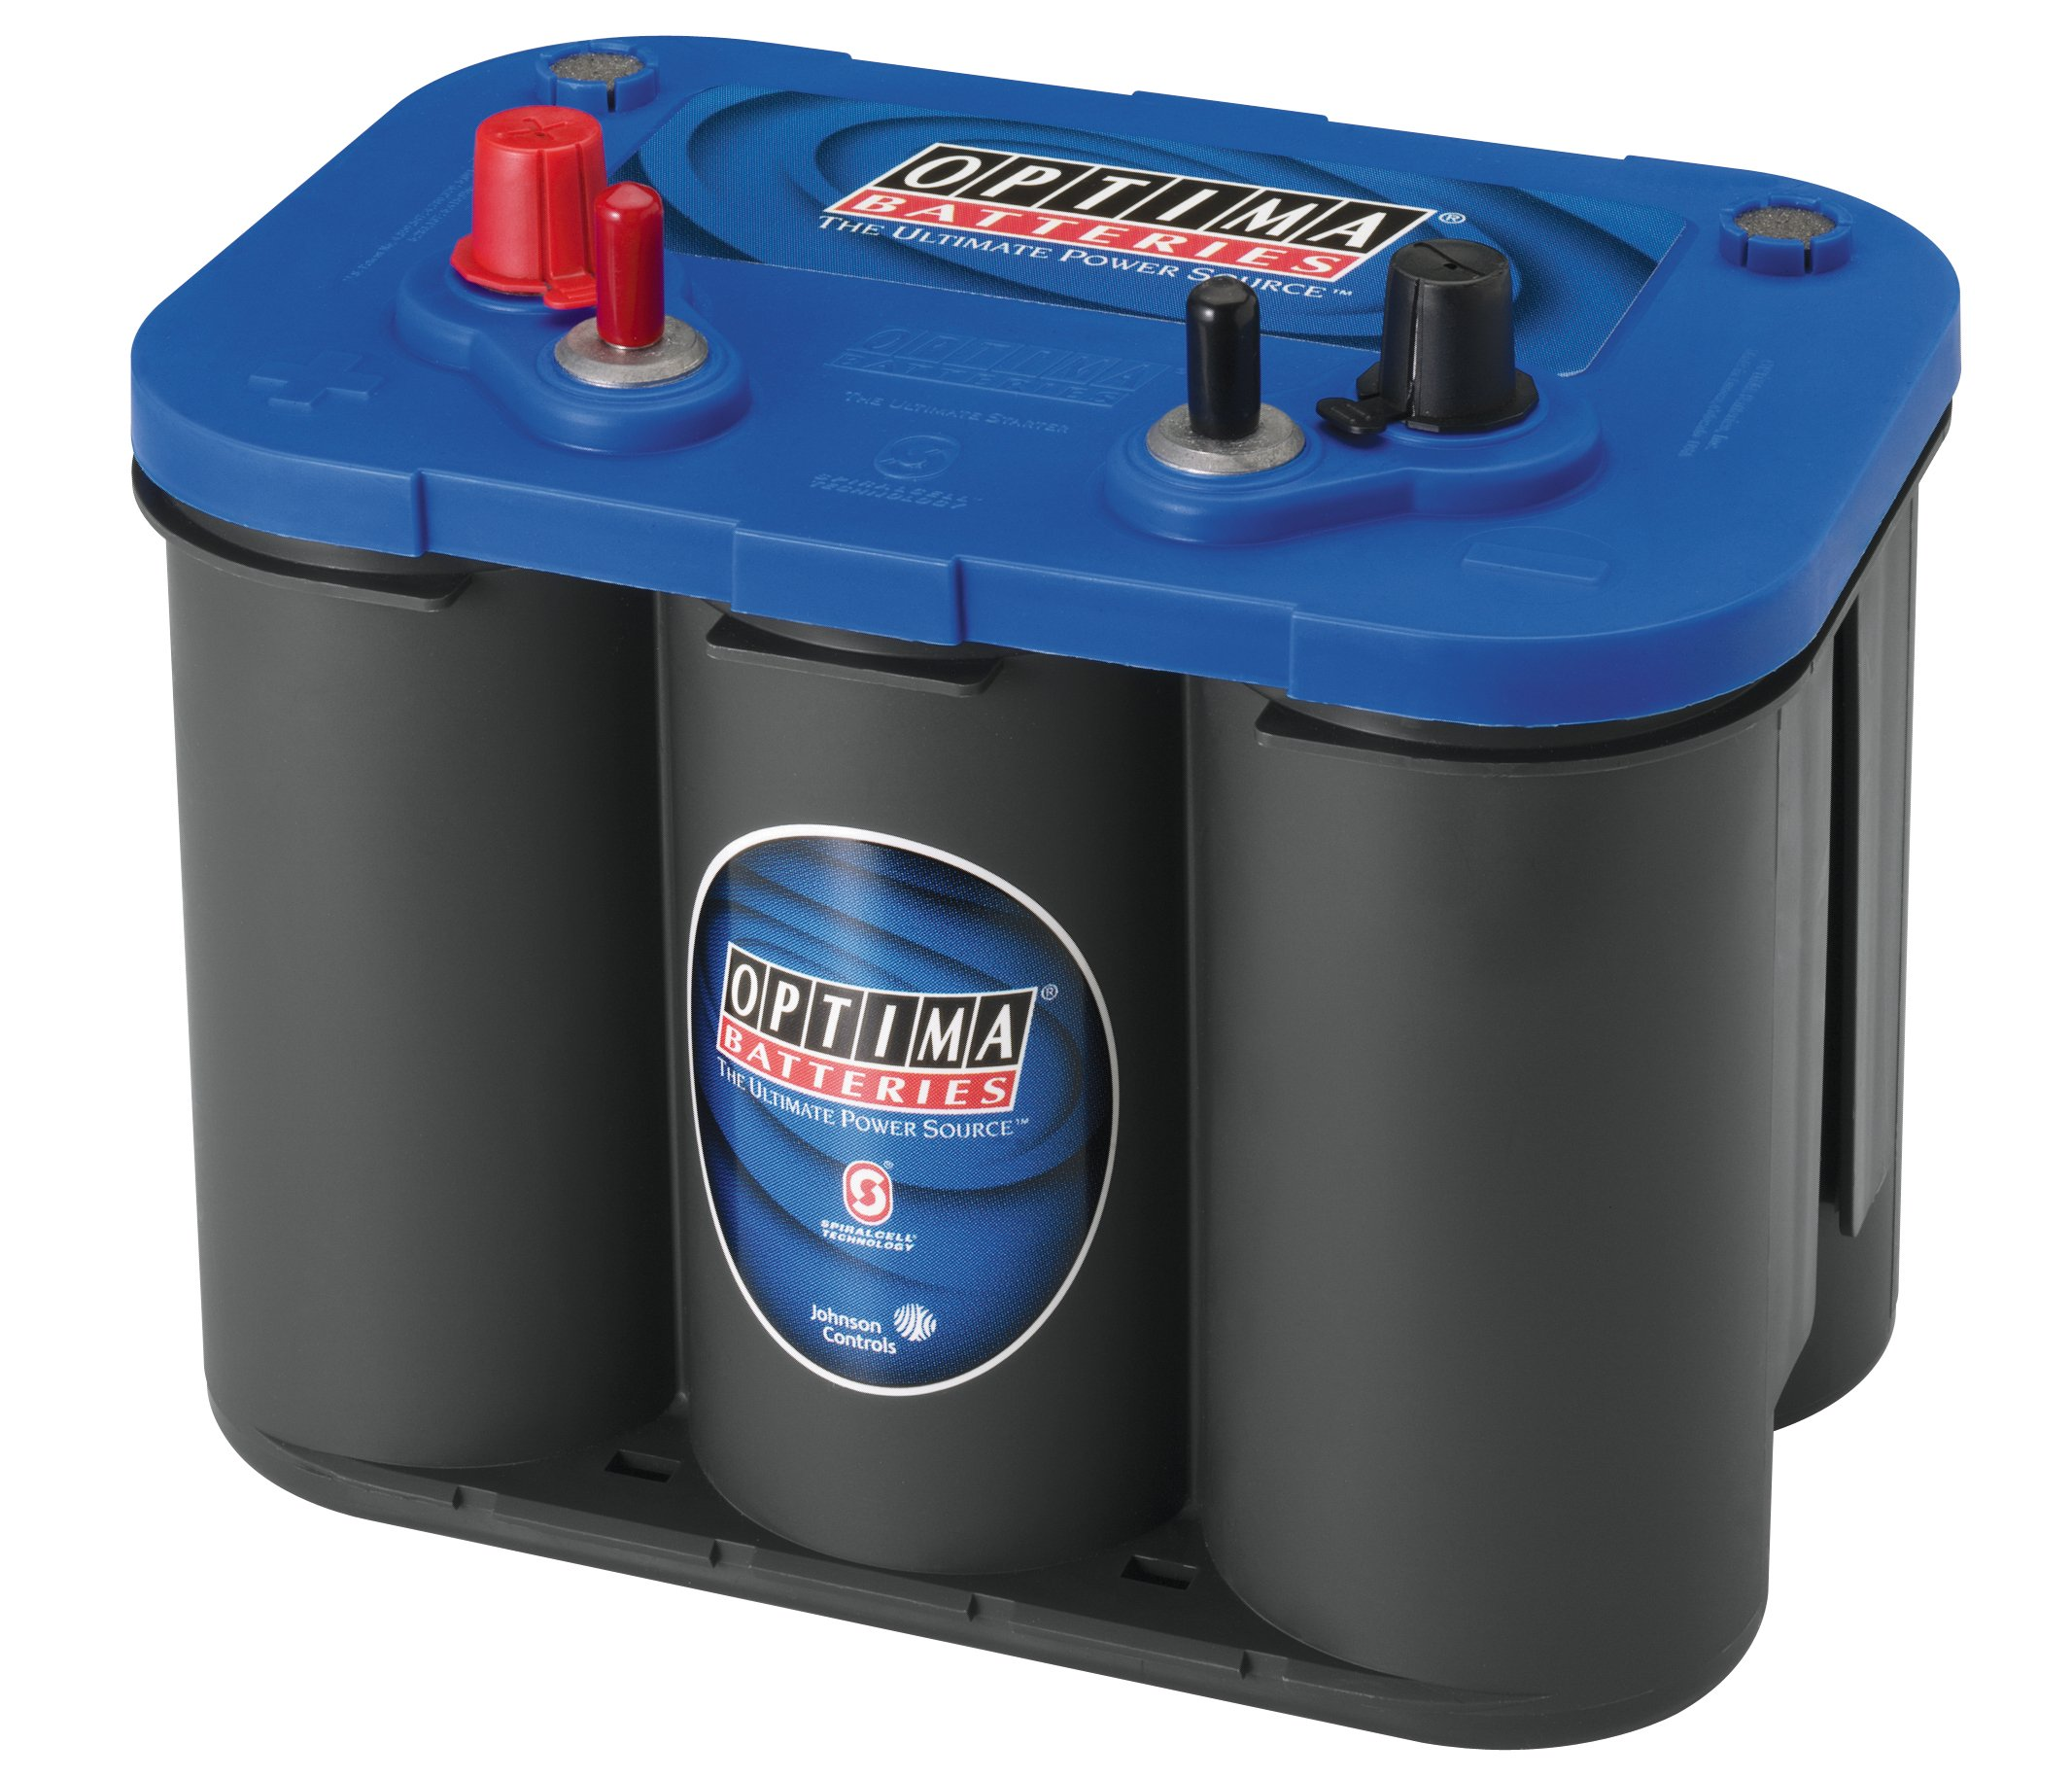 Optima Batteries. The power demands of today's cars, trucks, and SUVs are greater than ever, and Optima Batteries delivers. Optima utilizes patented Spiralcell Technology, which provides a strong, clean power source that far surpasses any of today's lead/acid batteries.